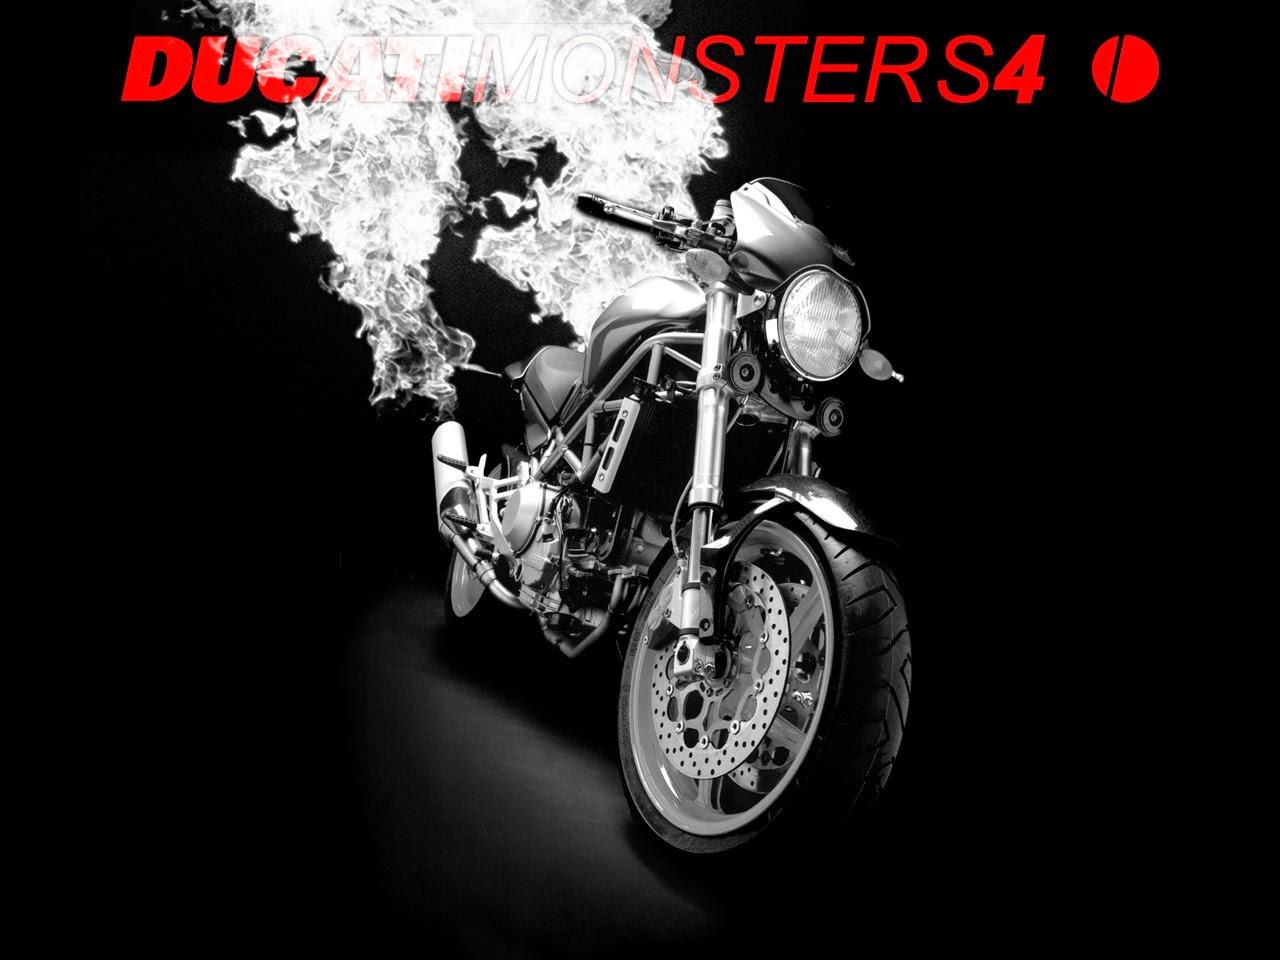 Indian Home Girl Wallpaper 24 Motorcycle Wallpapers Most Beautiful Places In The